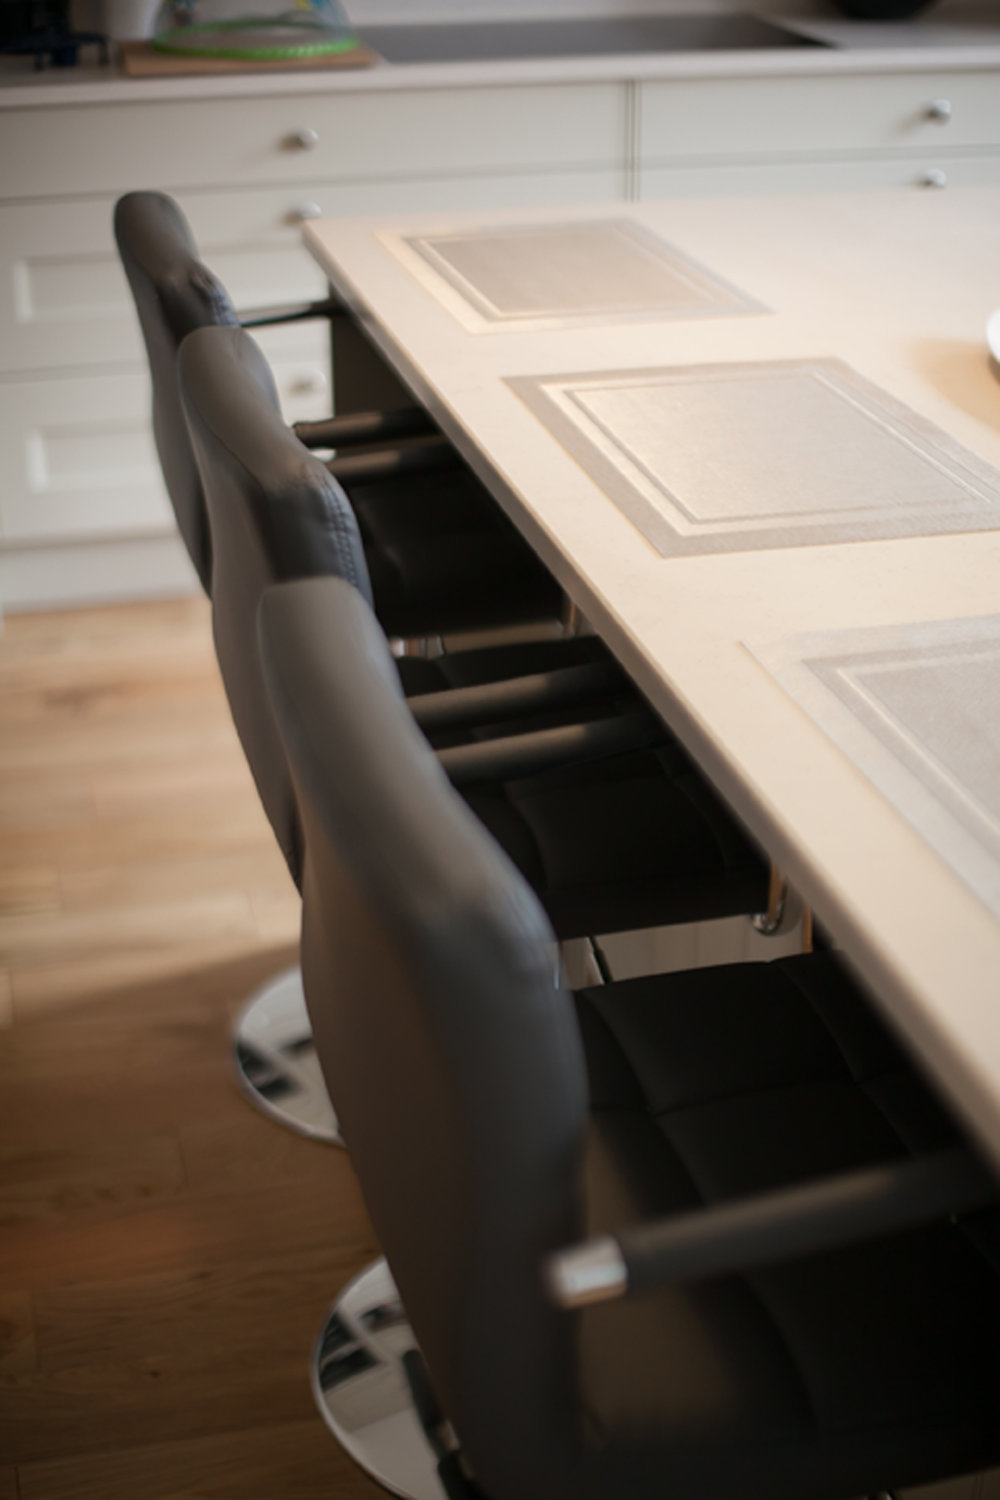 kitchen-table-design-maynooth-house.jpg